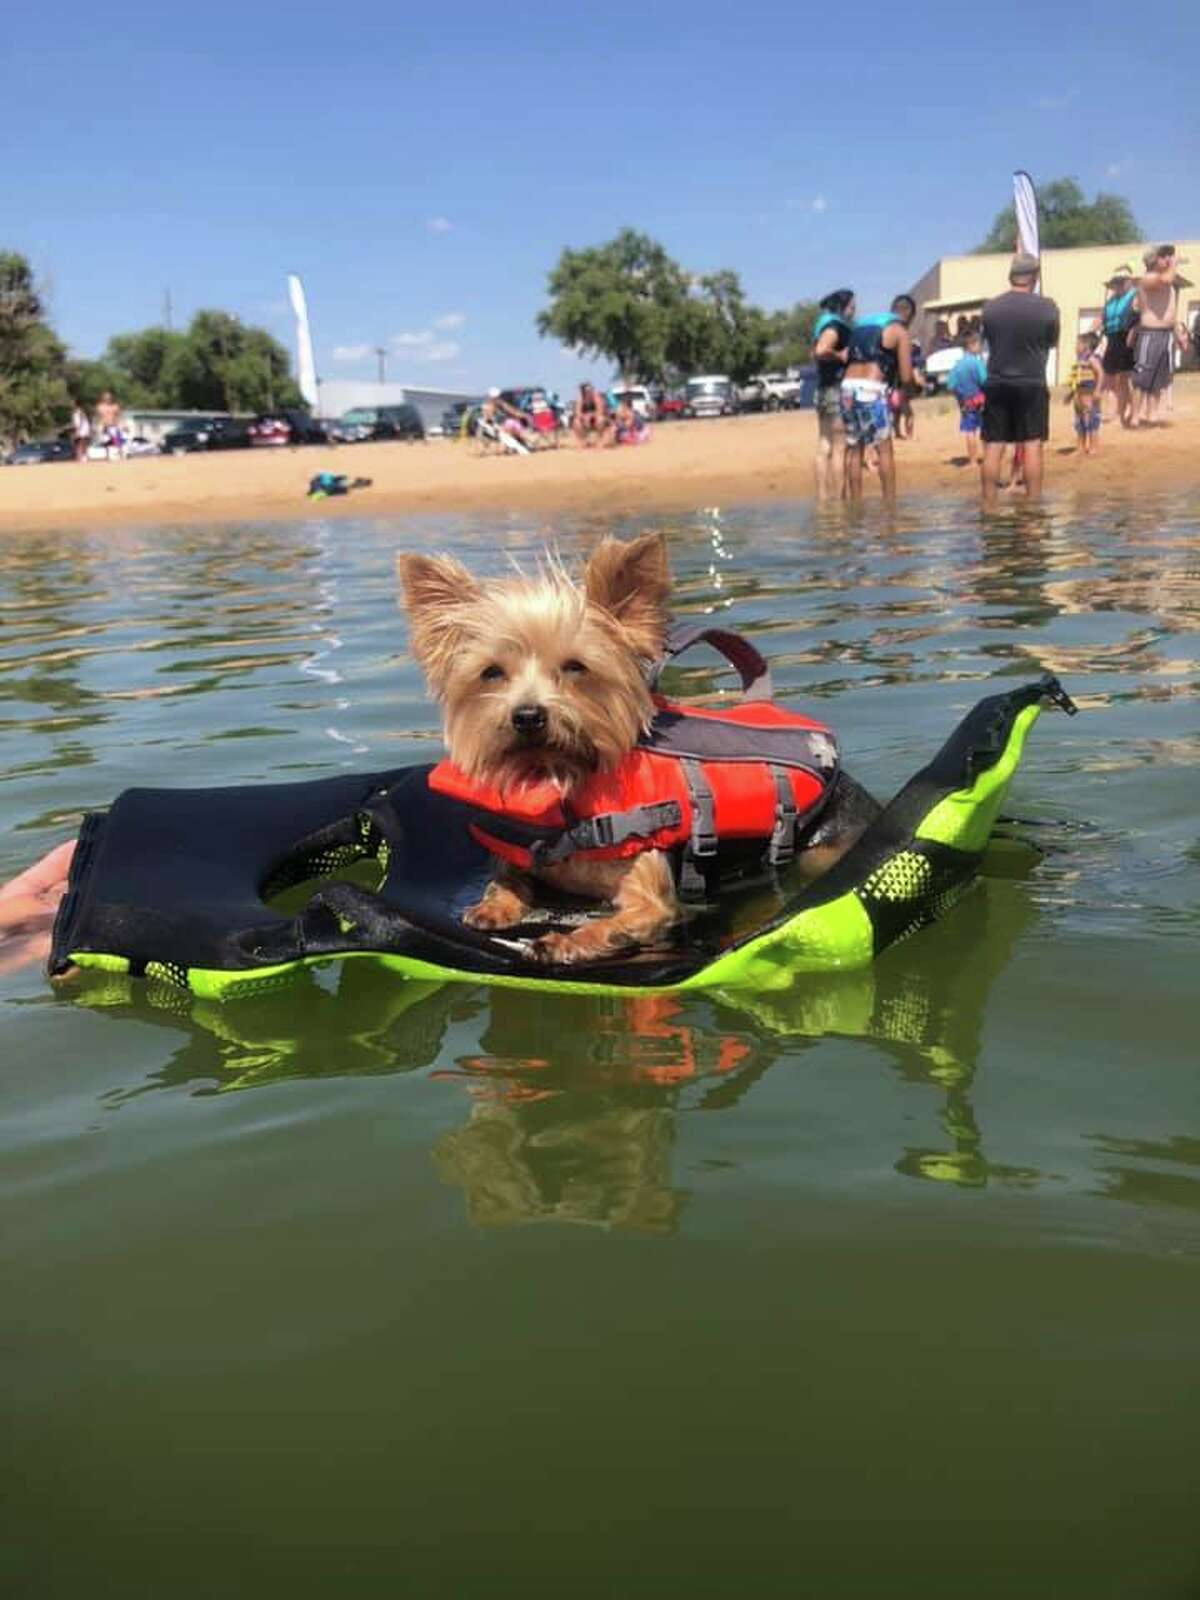 Katness with her life jacket taking a break floating on her brothers life jacket